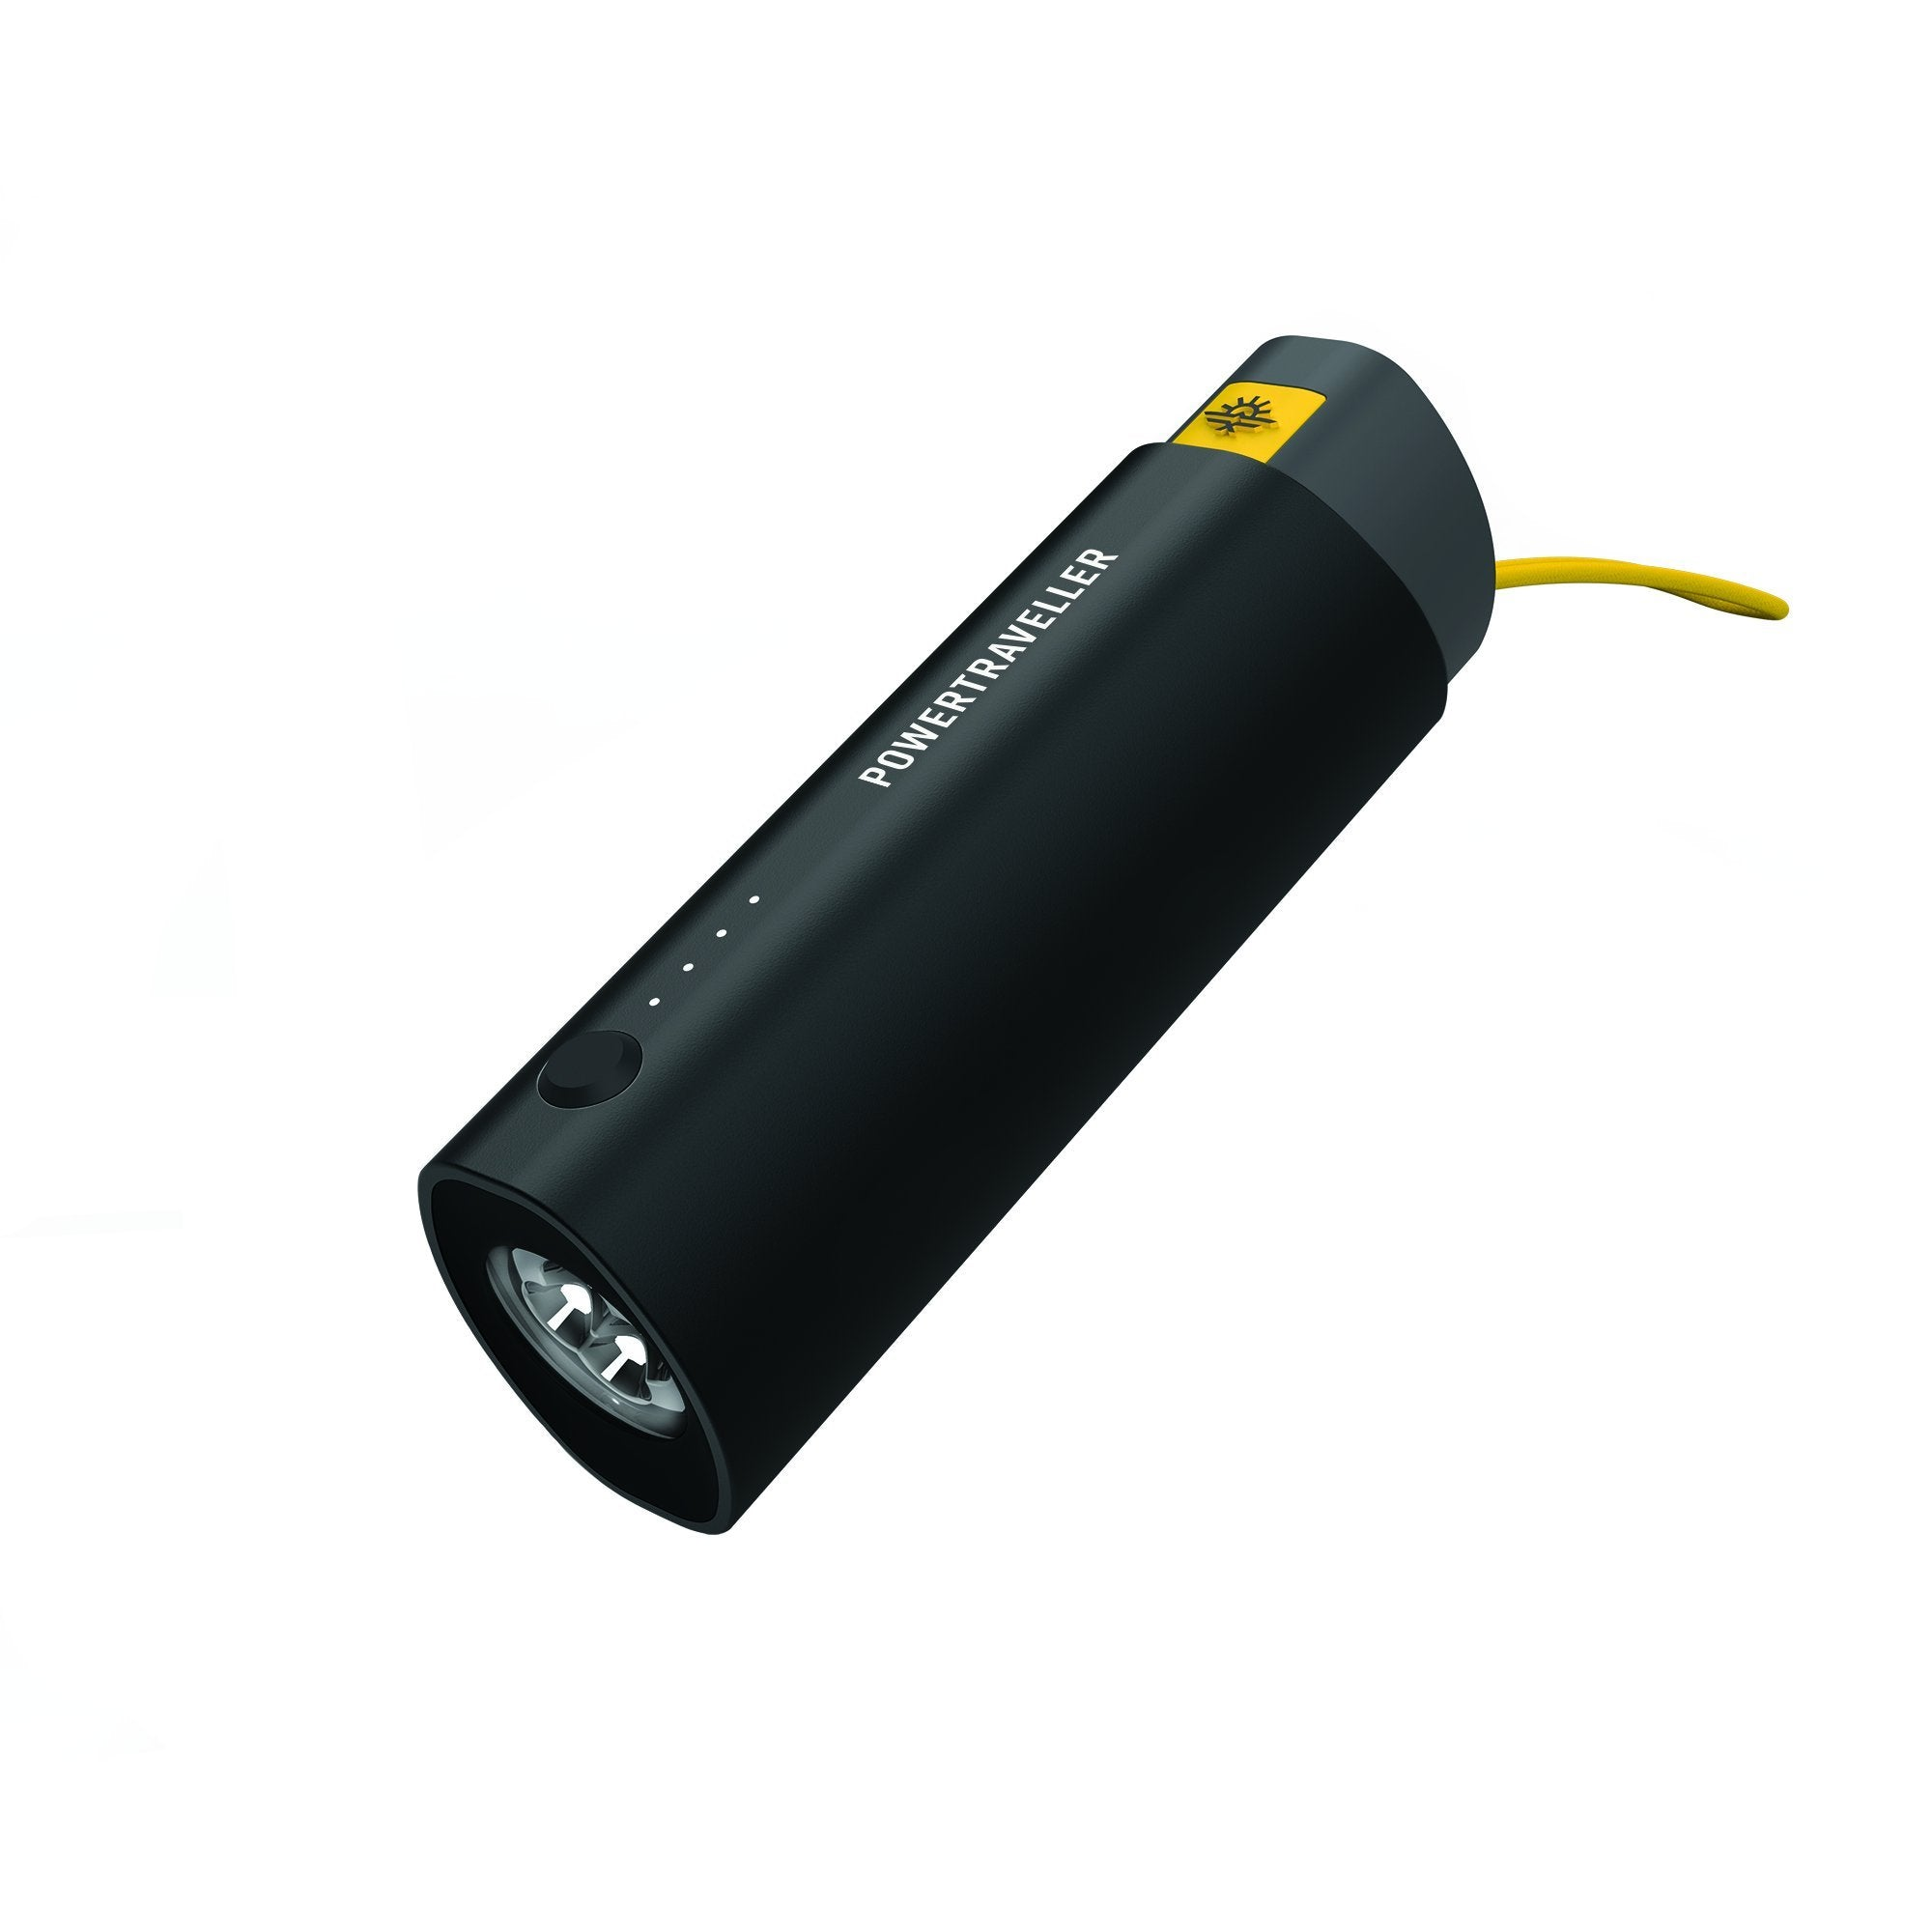 Merlin 15 - Portable Power Bank